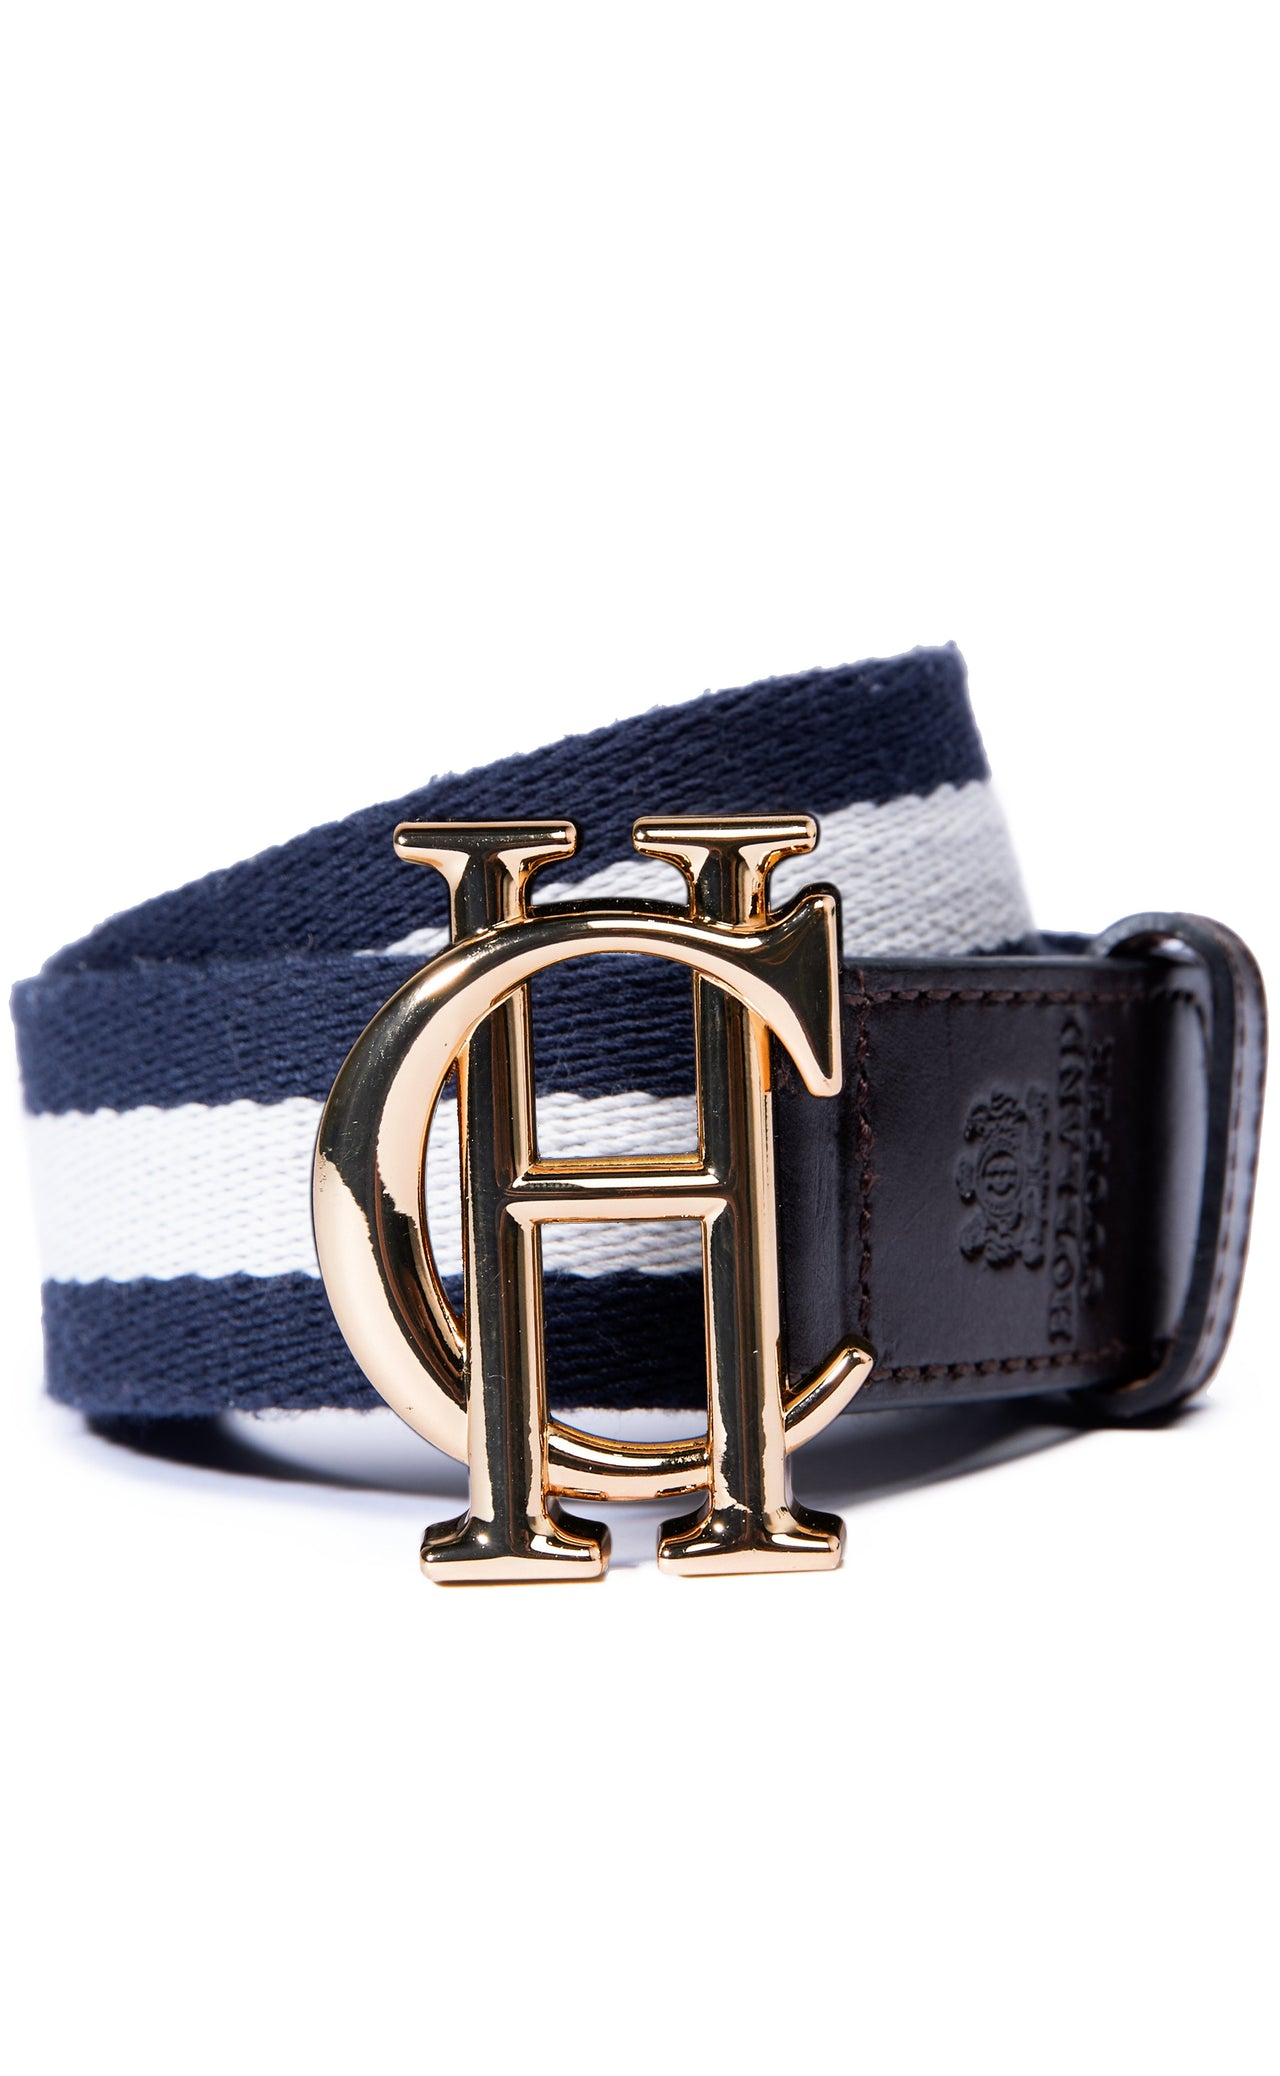 HC Classic Belt (Brown with Navy & White)